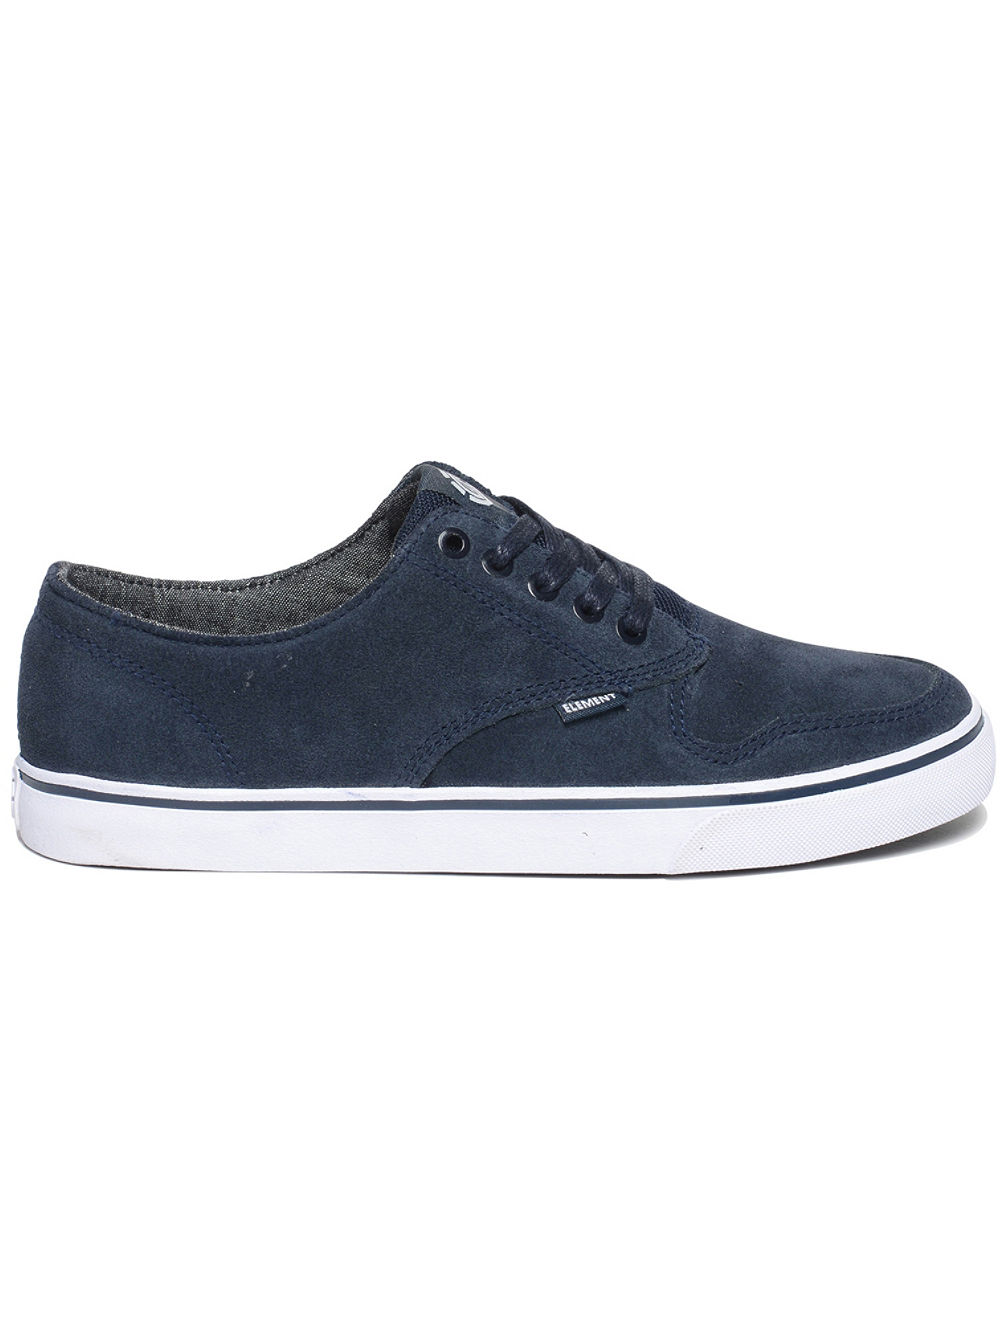 Topaz C3 Sneakers Boys